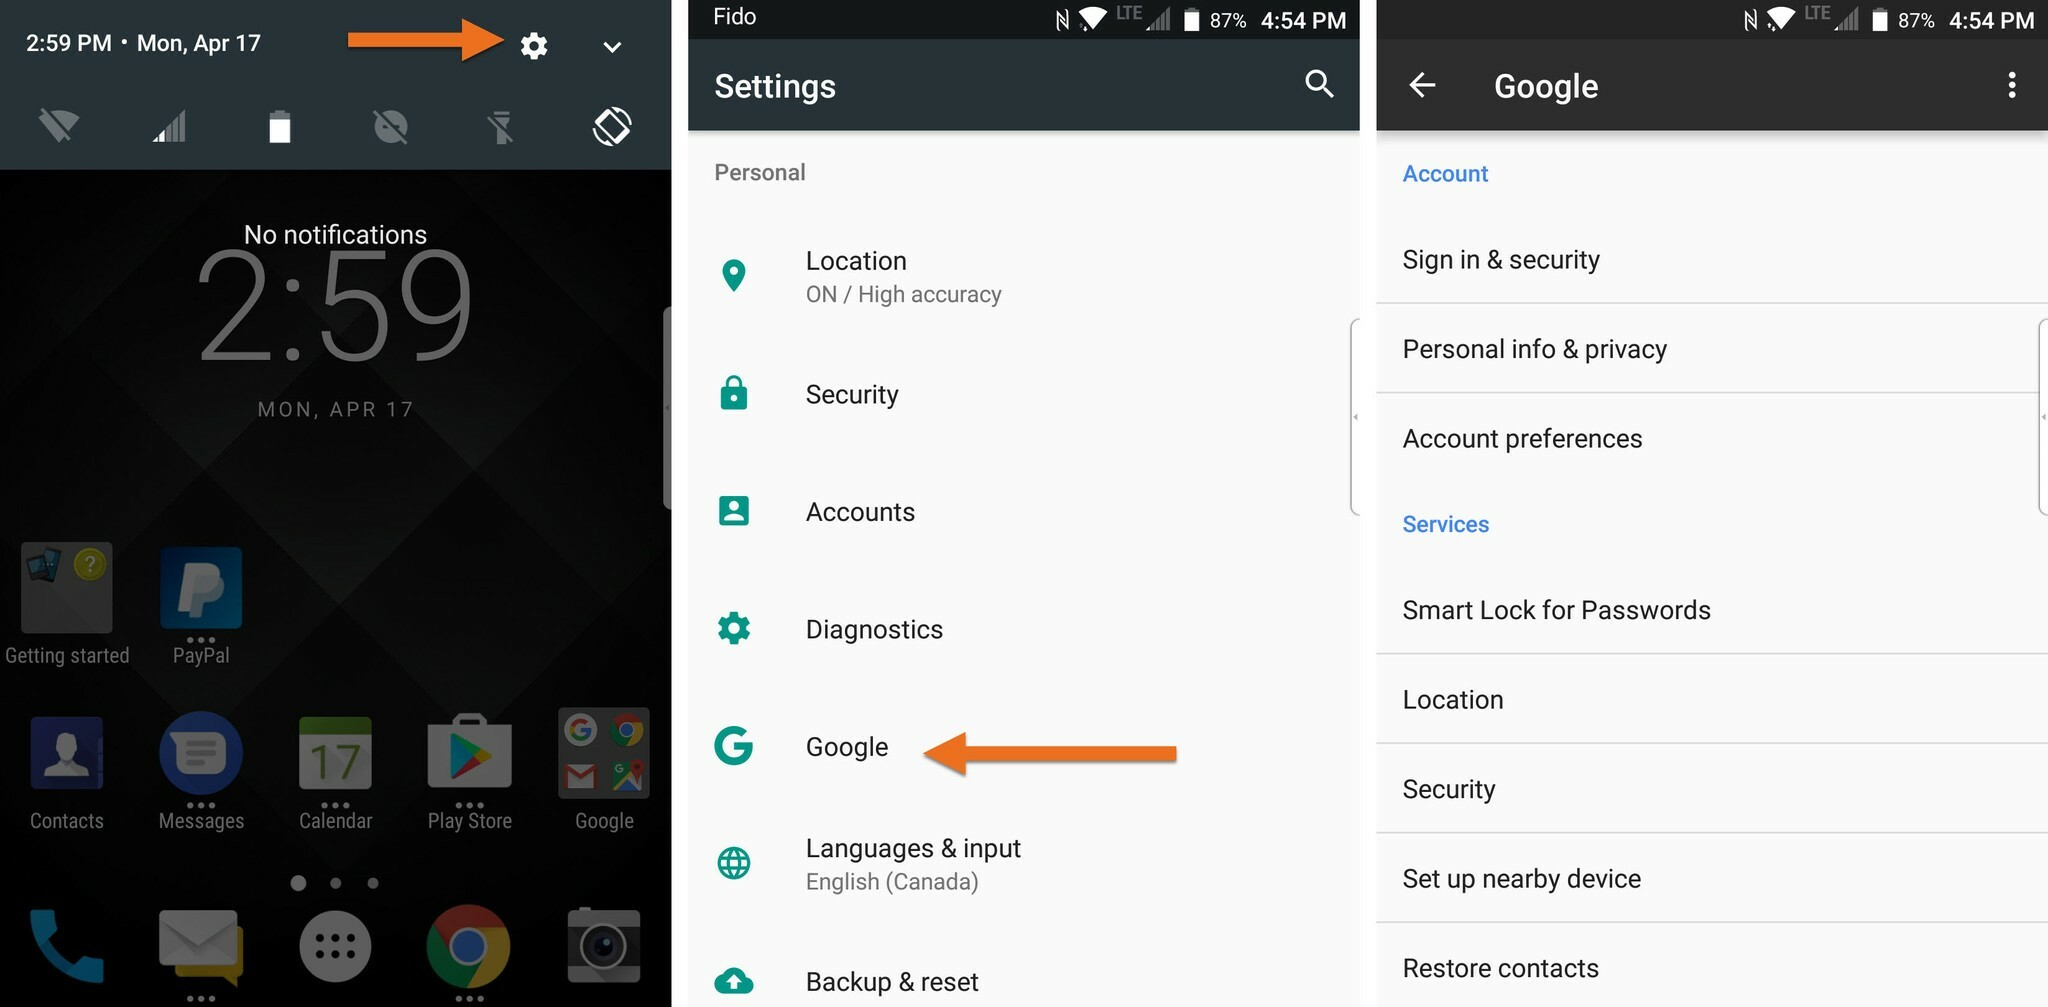 Changing Google accounts on the BlackBerry KEYone